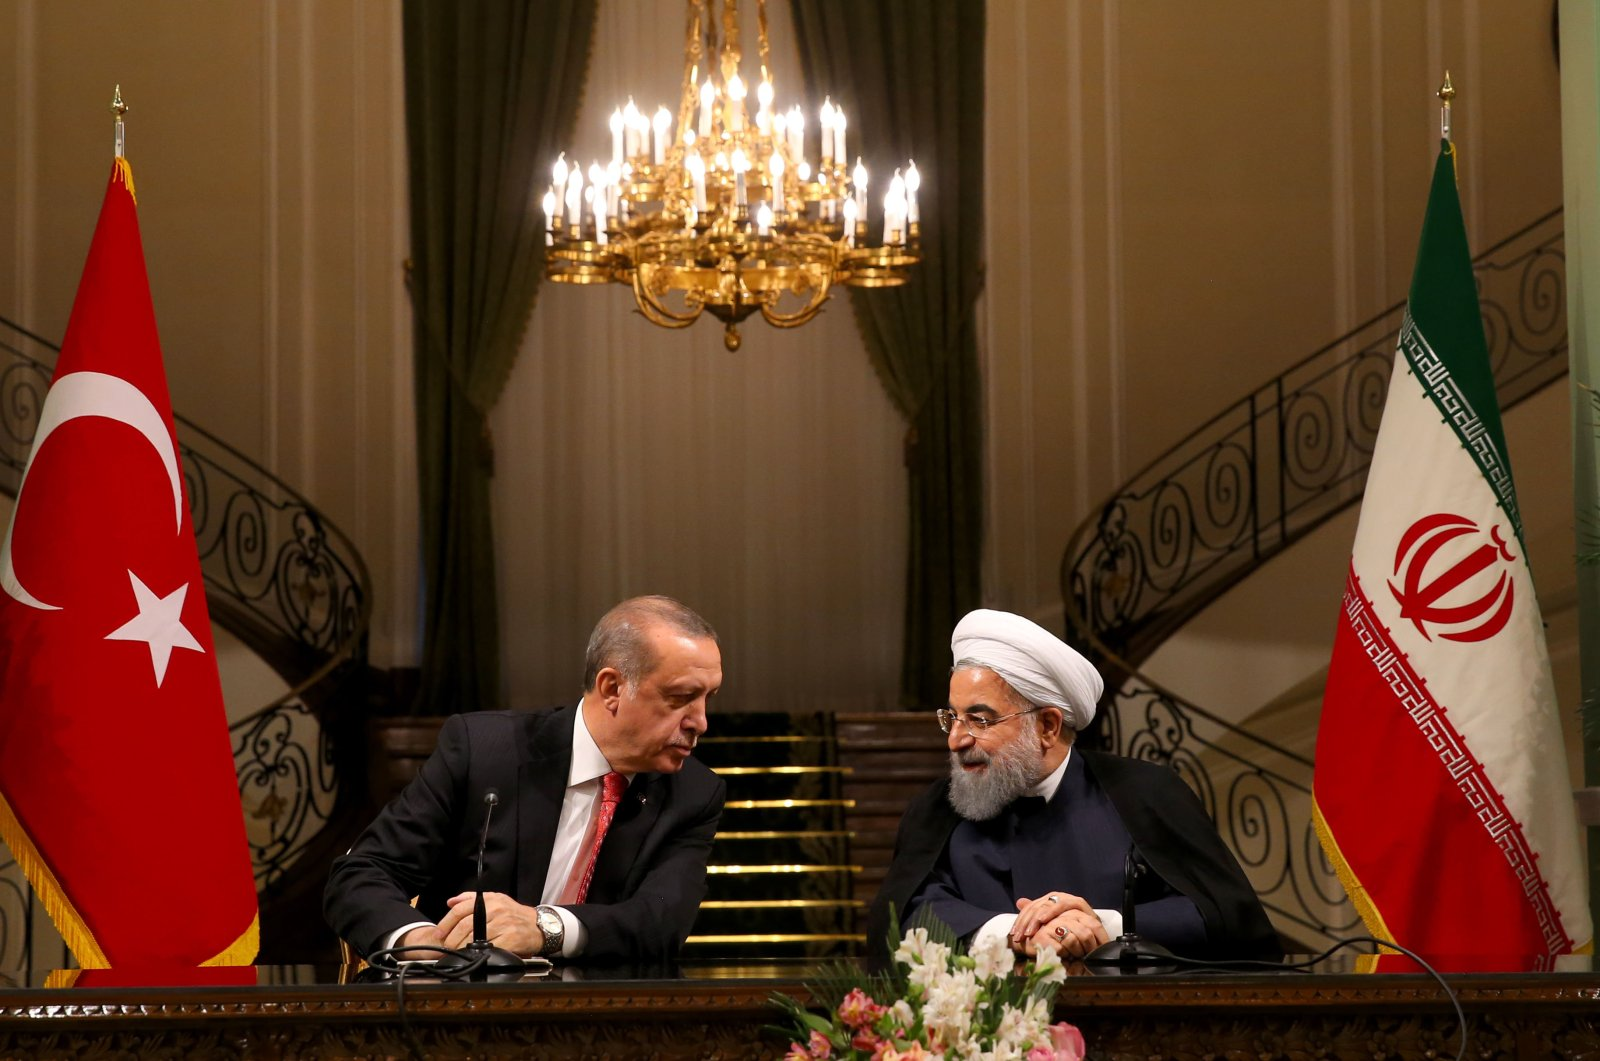 President Recep Tayyip Erdoğan (L) and Iranian President Hassan Rouhani (R) during a joint press conference, Oct. 4, 2017. (AA Photo)